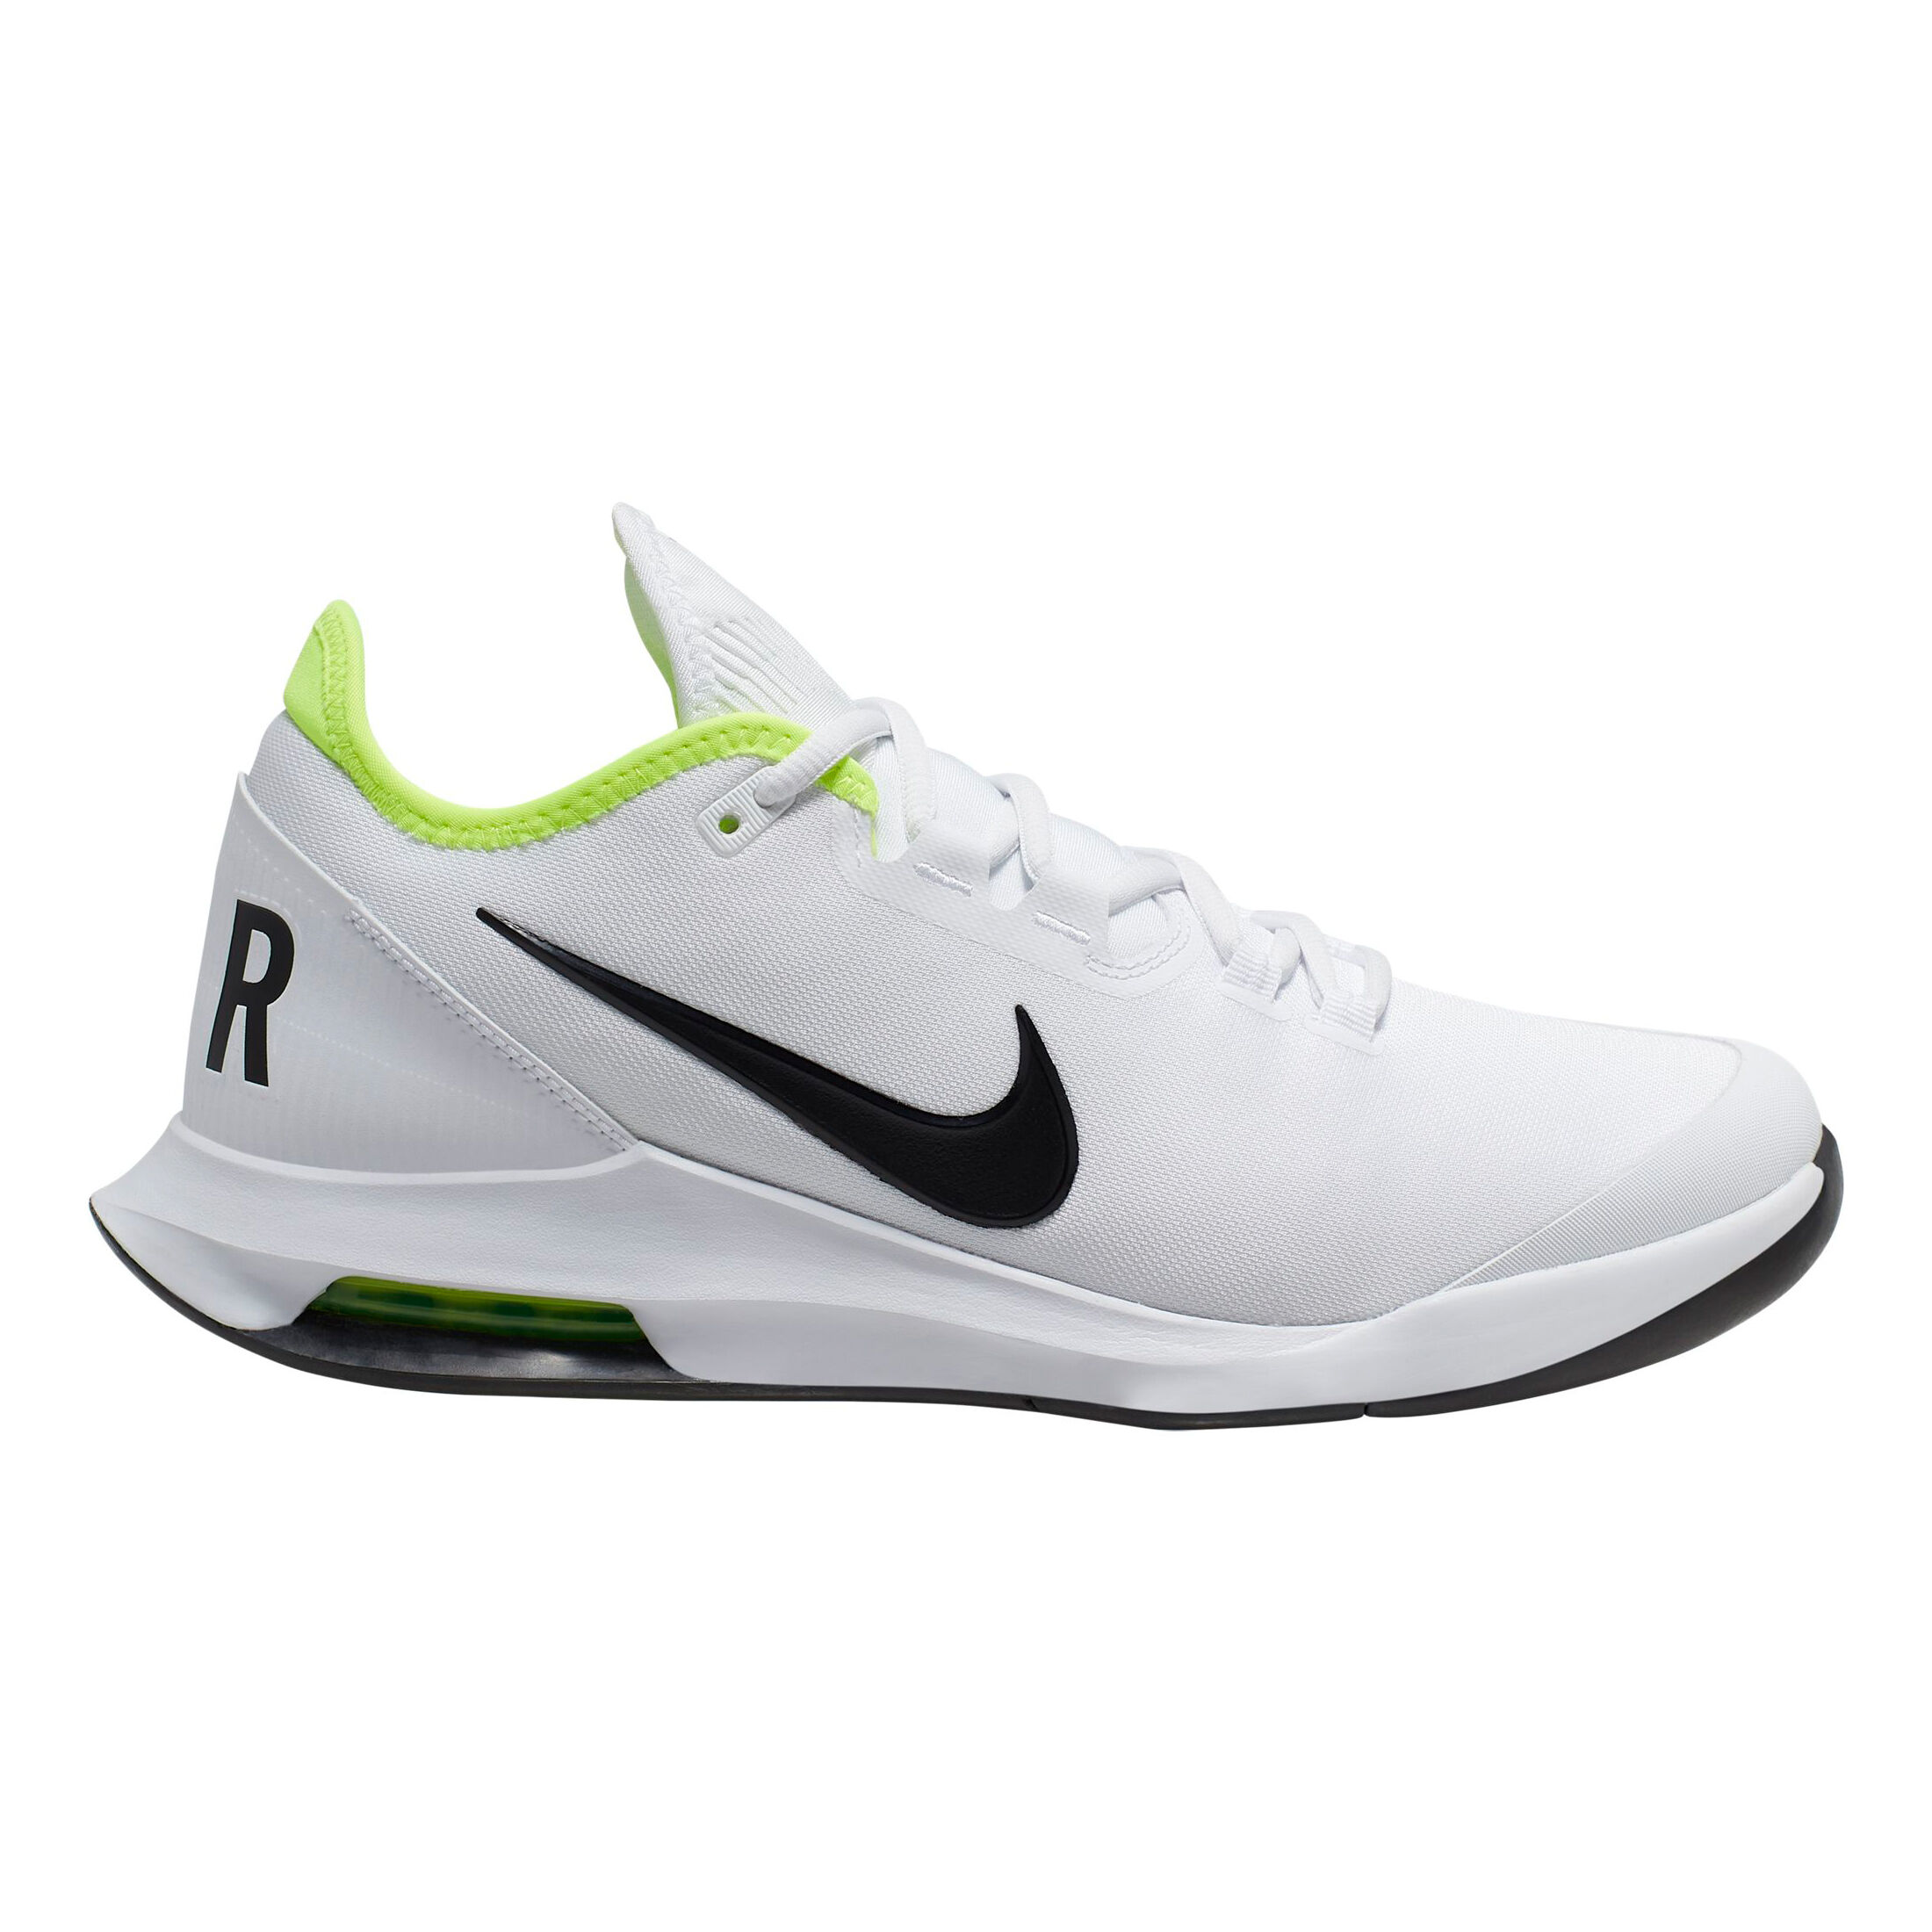 Nike Air Max Wildcard Chaussures Toutes Surfaces Hommes Blanc , Vert Fluo